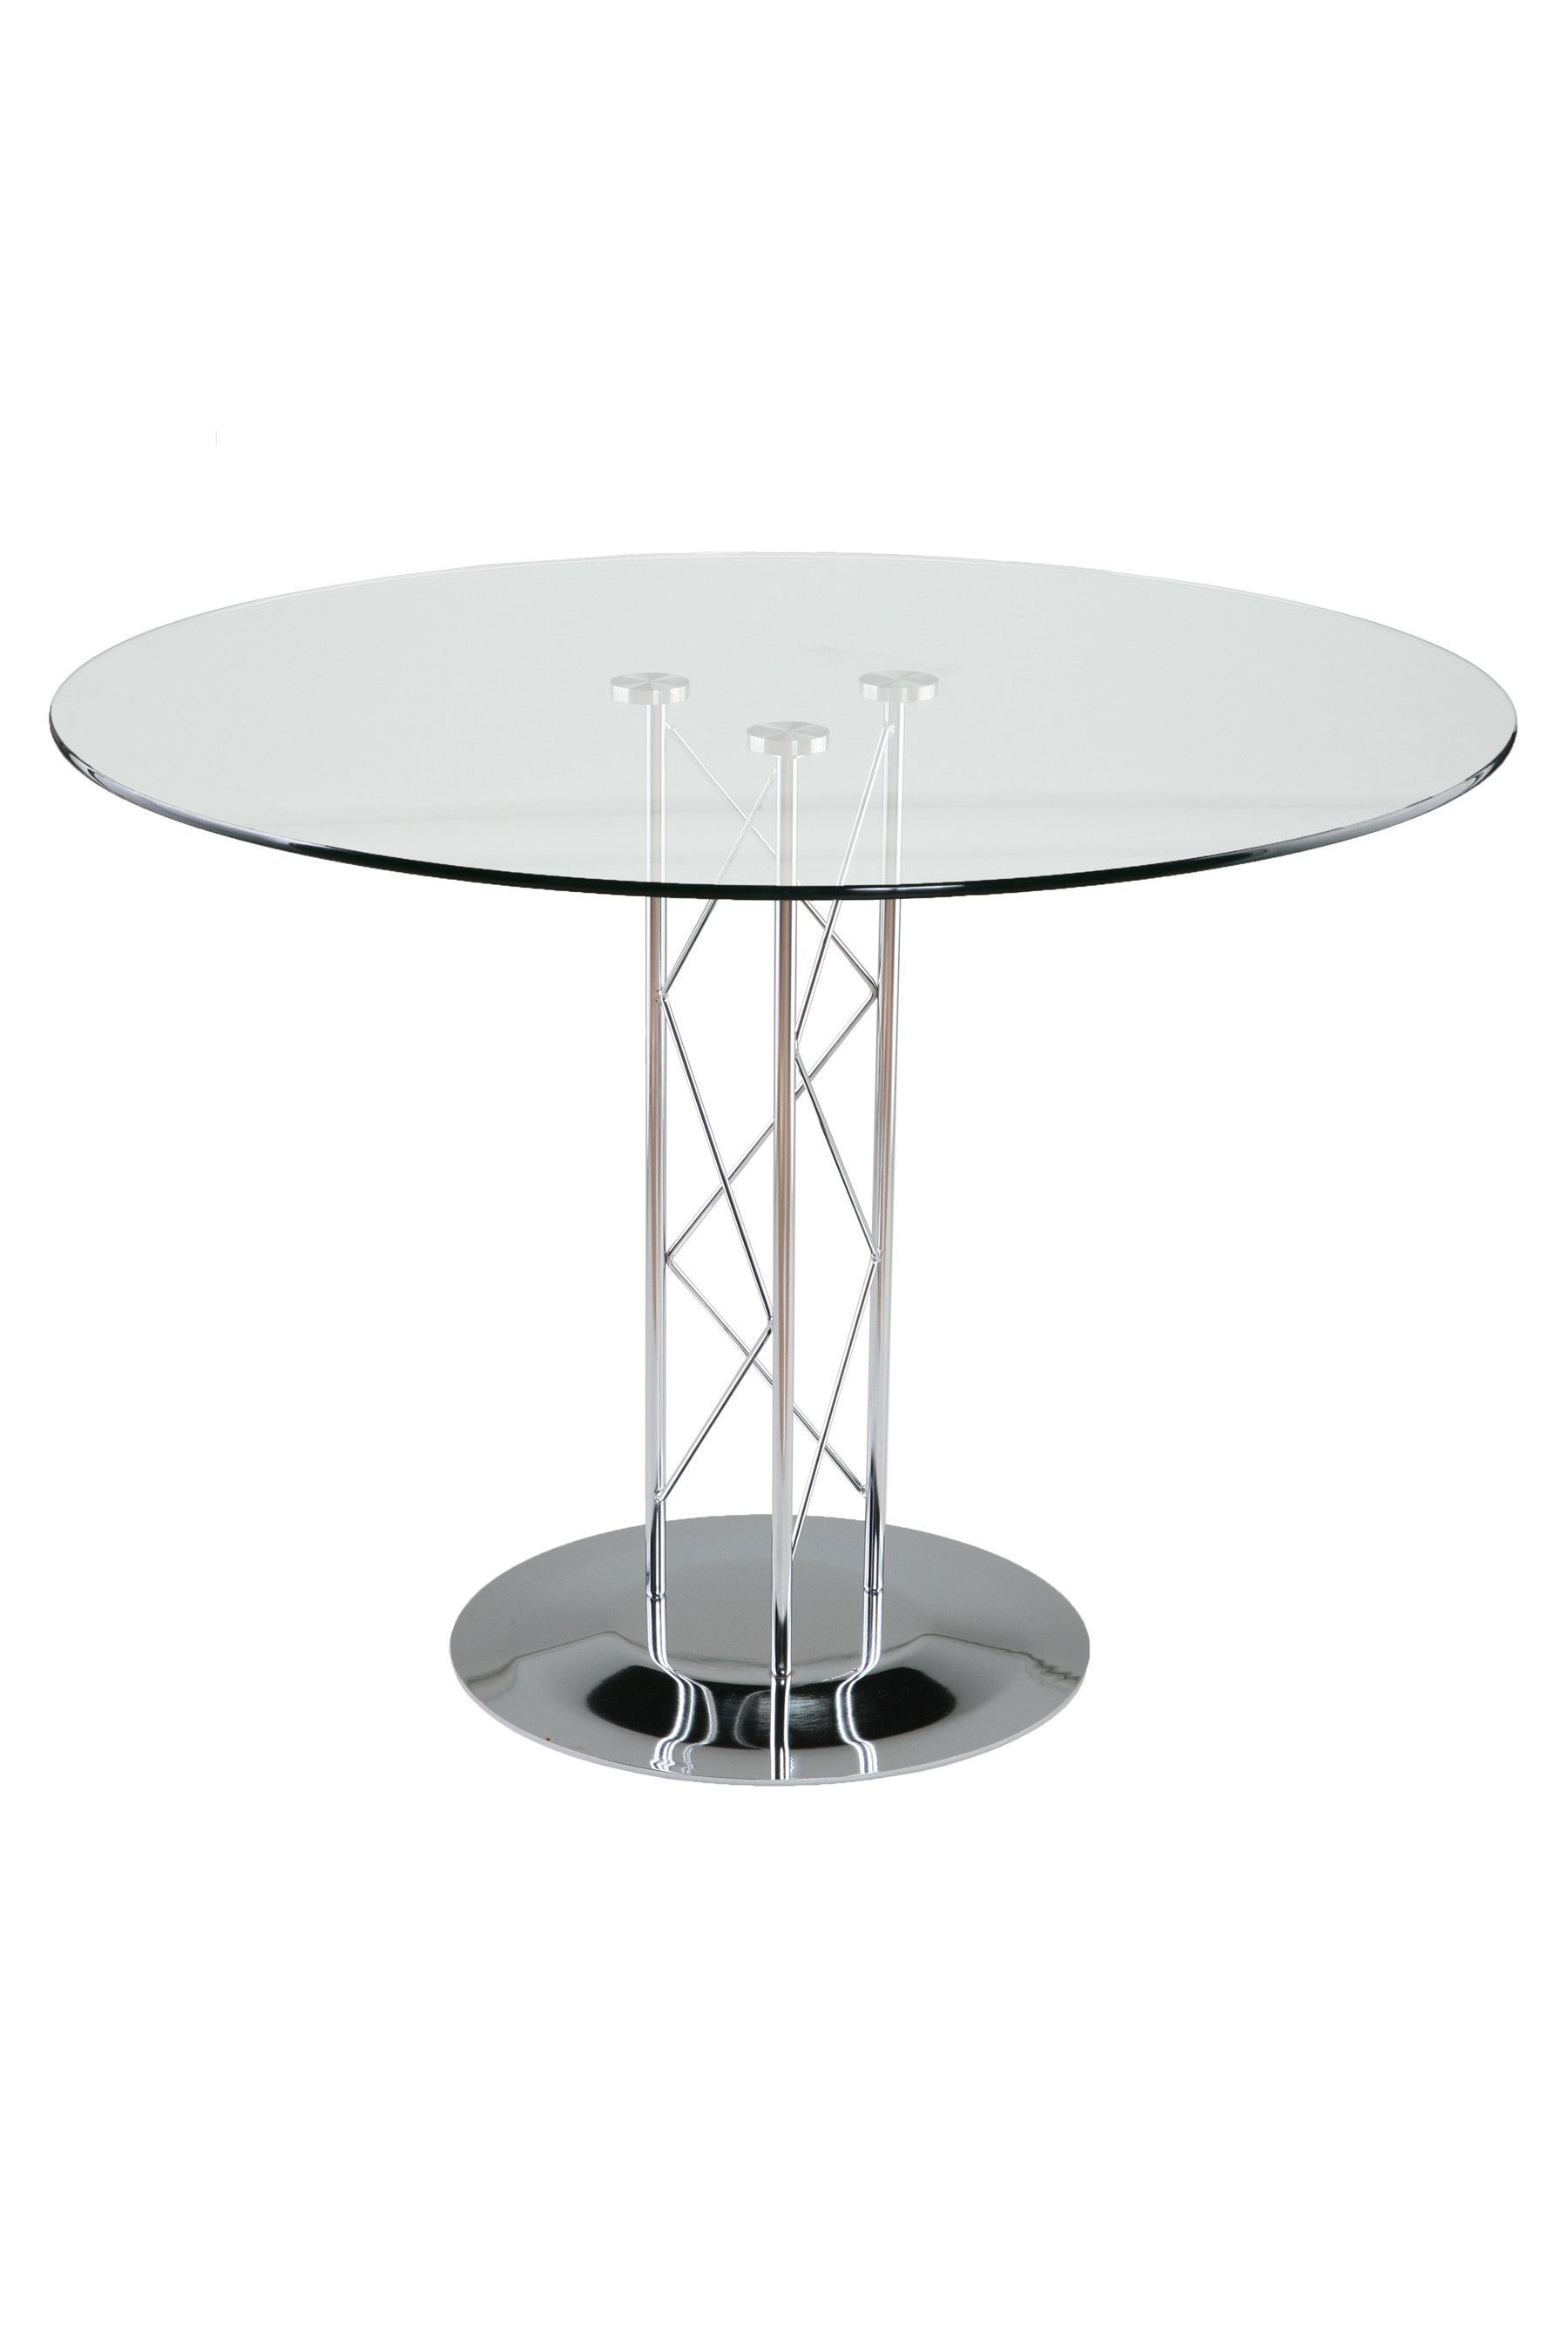 Contemporary dining table bases  Trave